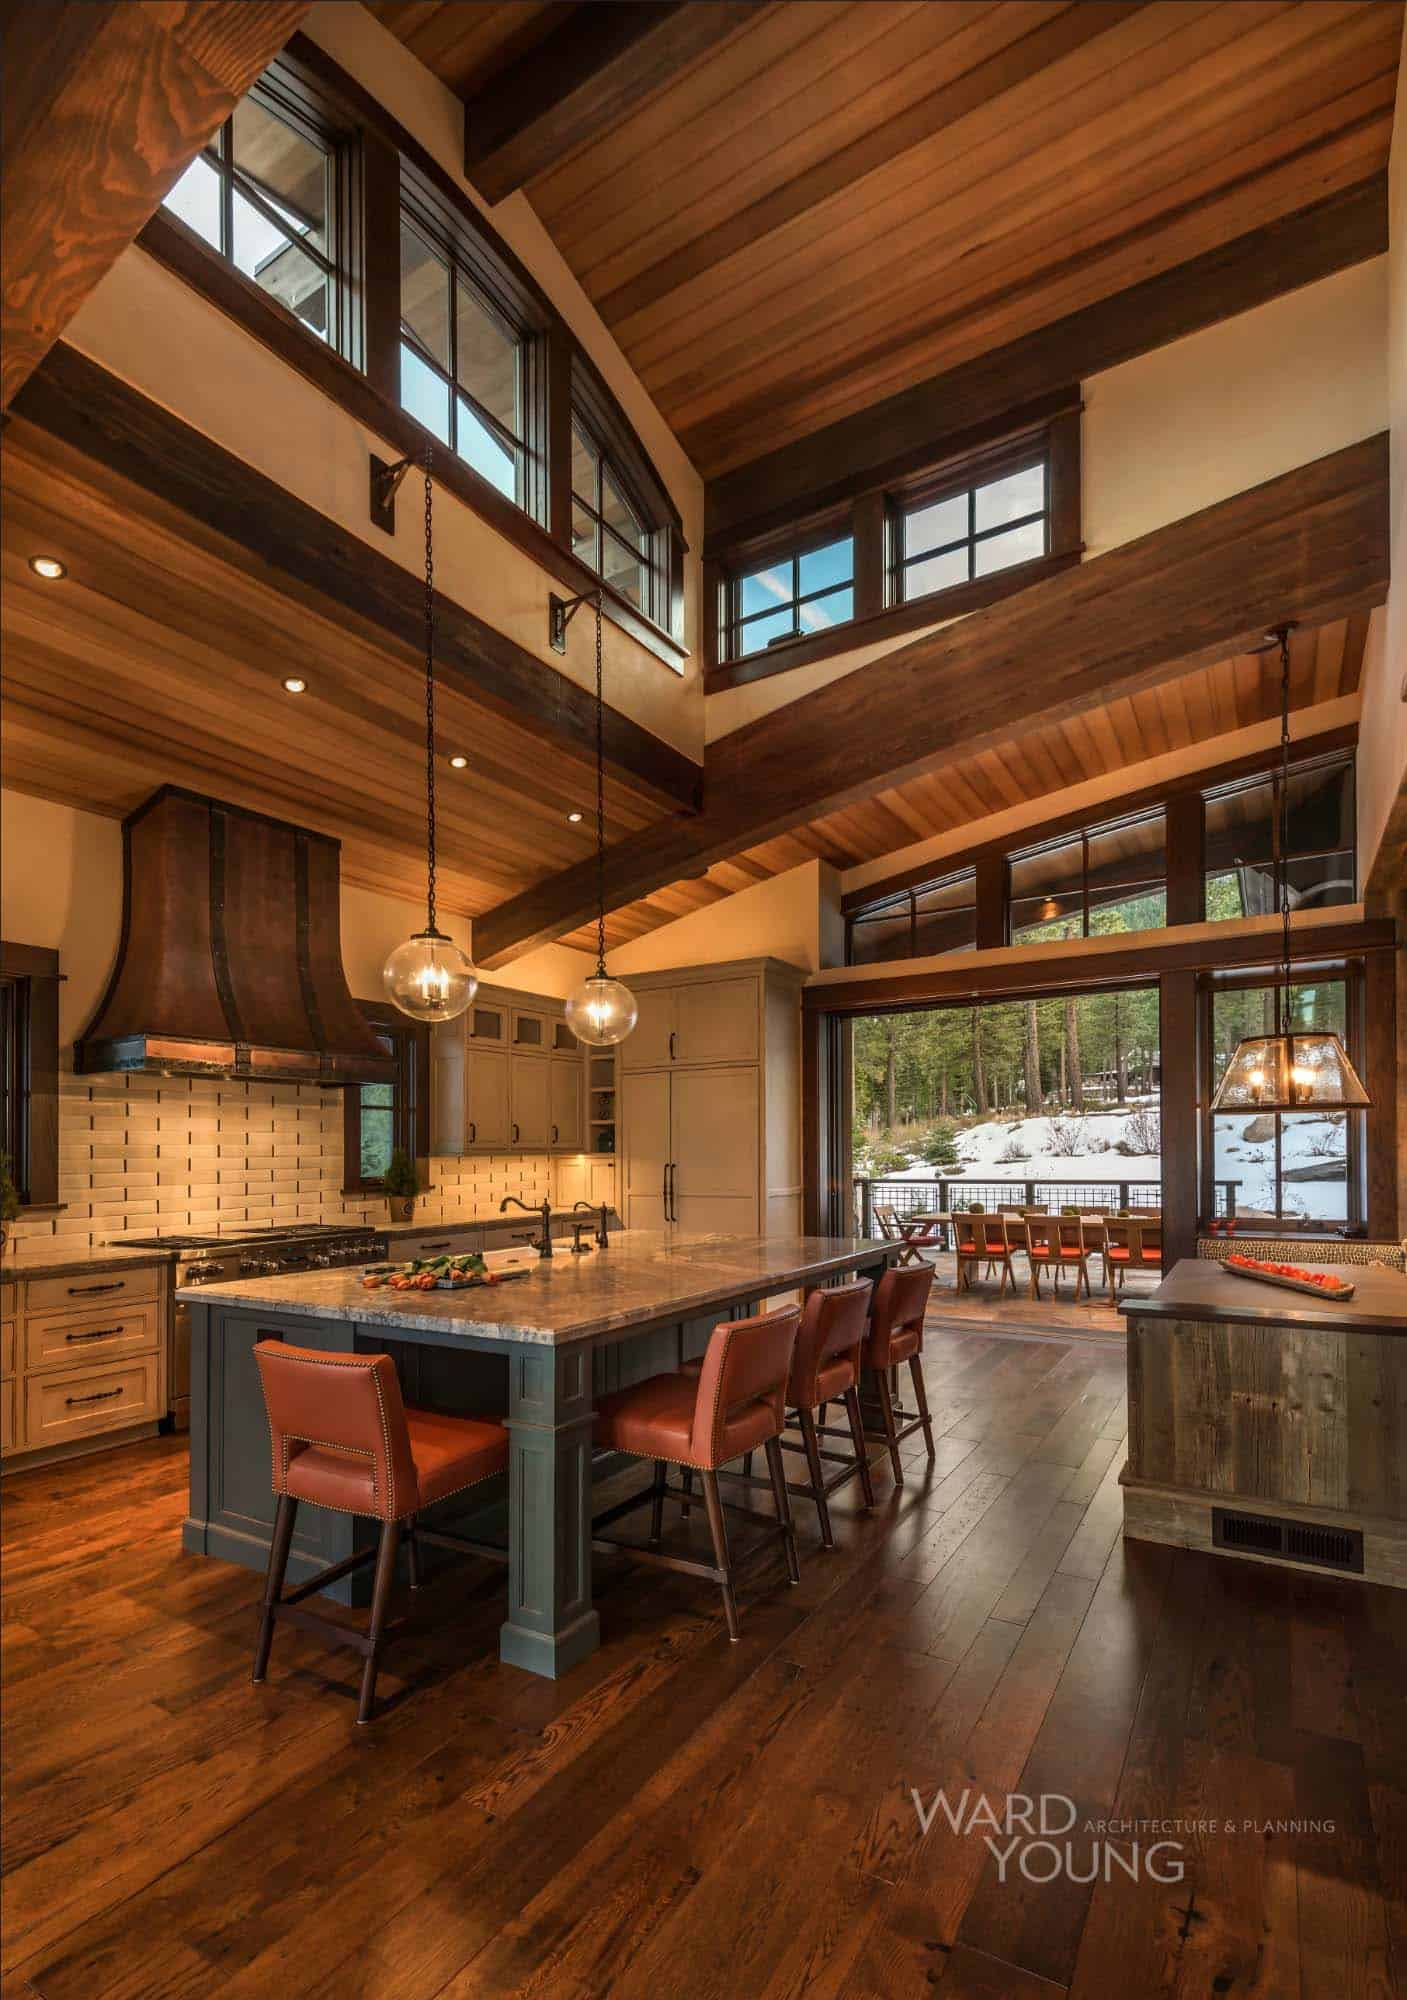 Lodge Style Home-Ward Young Architects-06-1 Kindesign.jpg